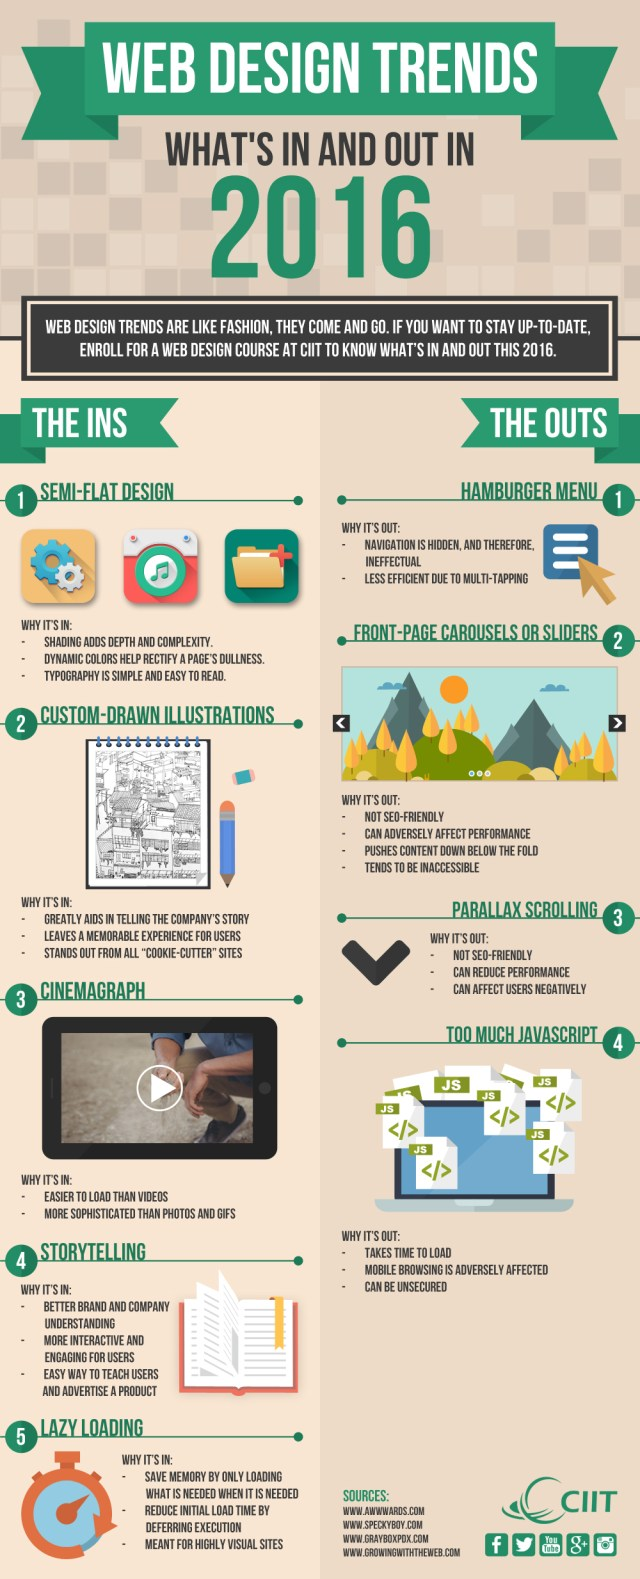 web-design-trends-to-expect-this-2016-infographic_56b94728331d5